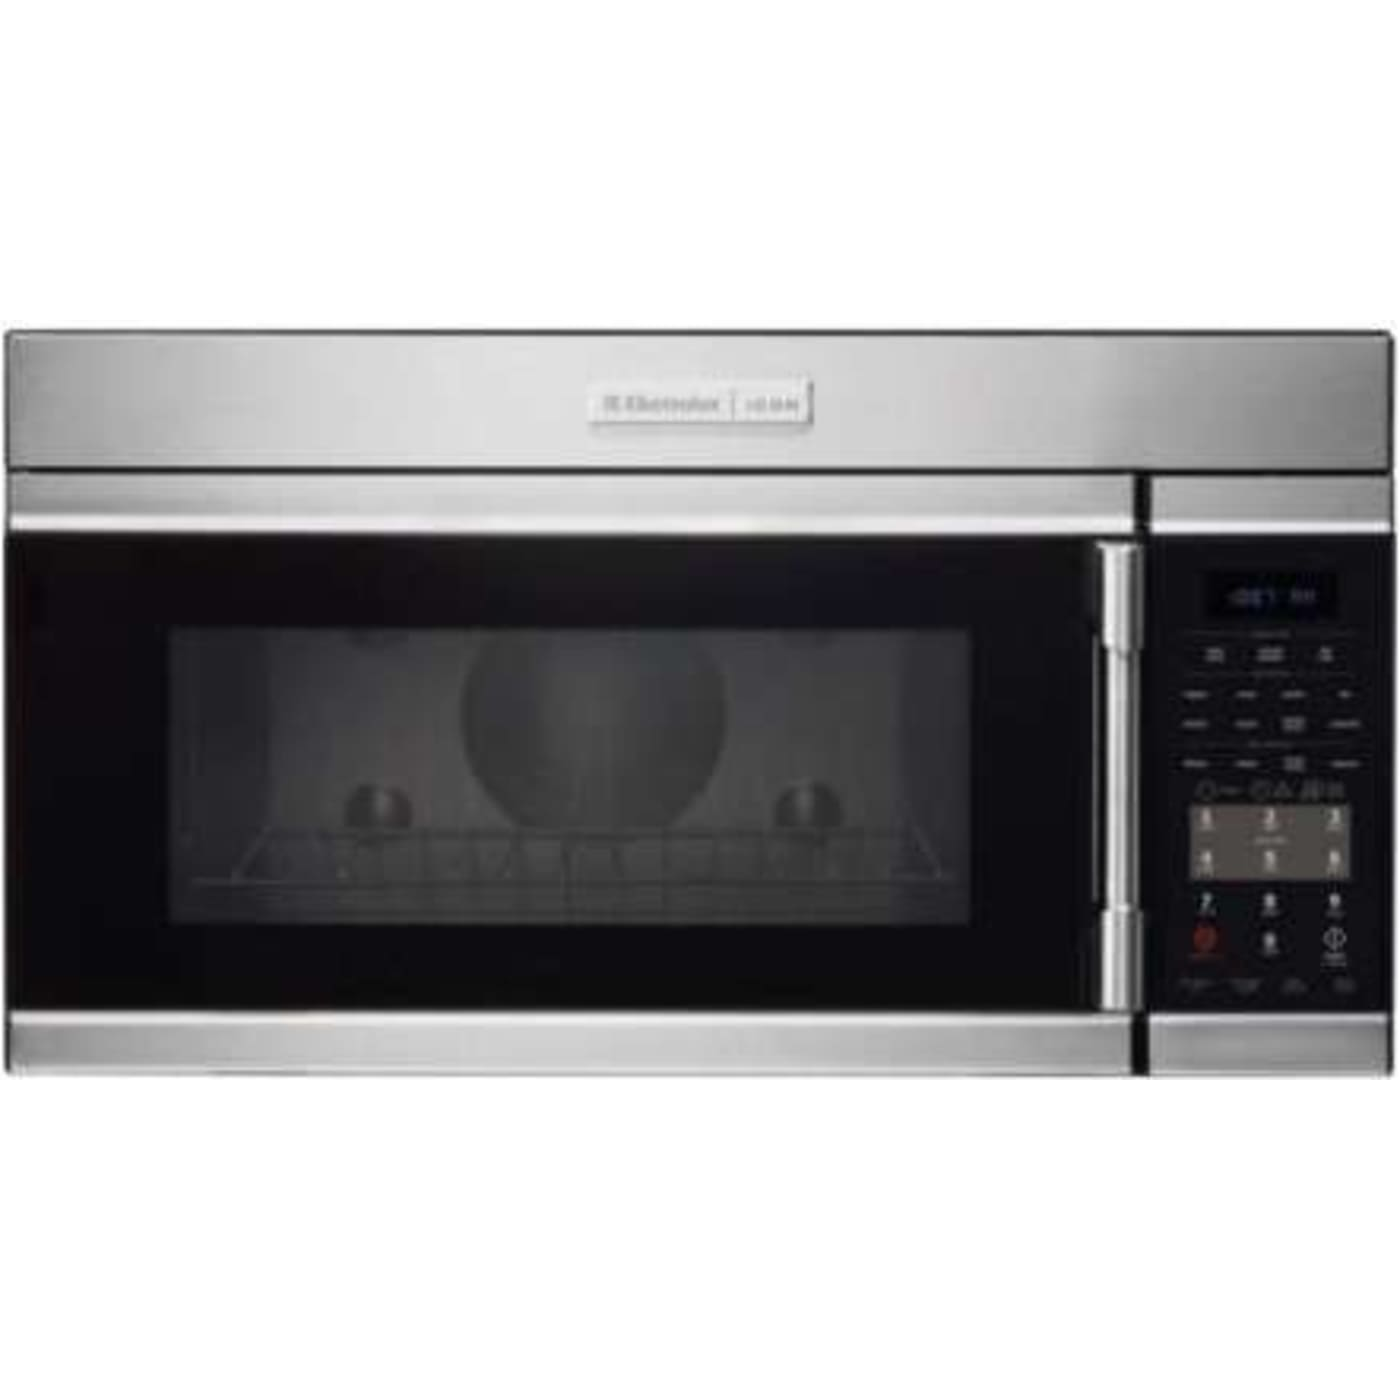 E30mh65qps By Electrolux Icon Over The Range Microwaves